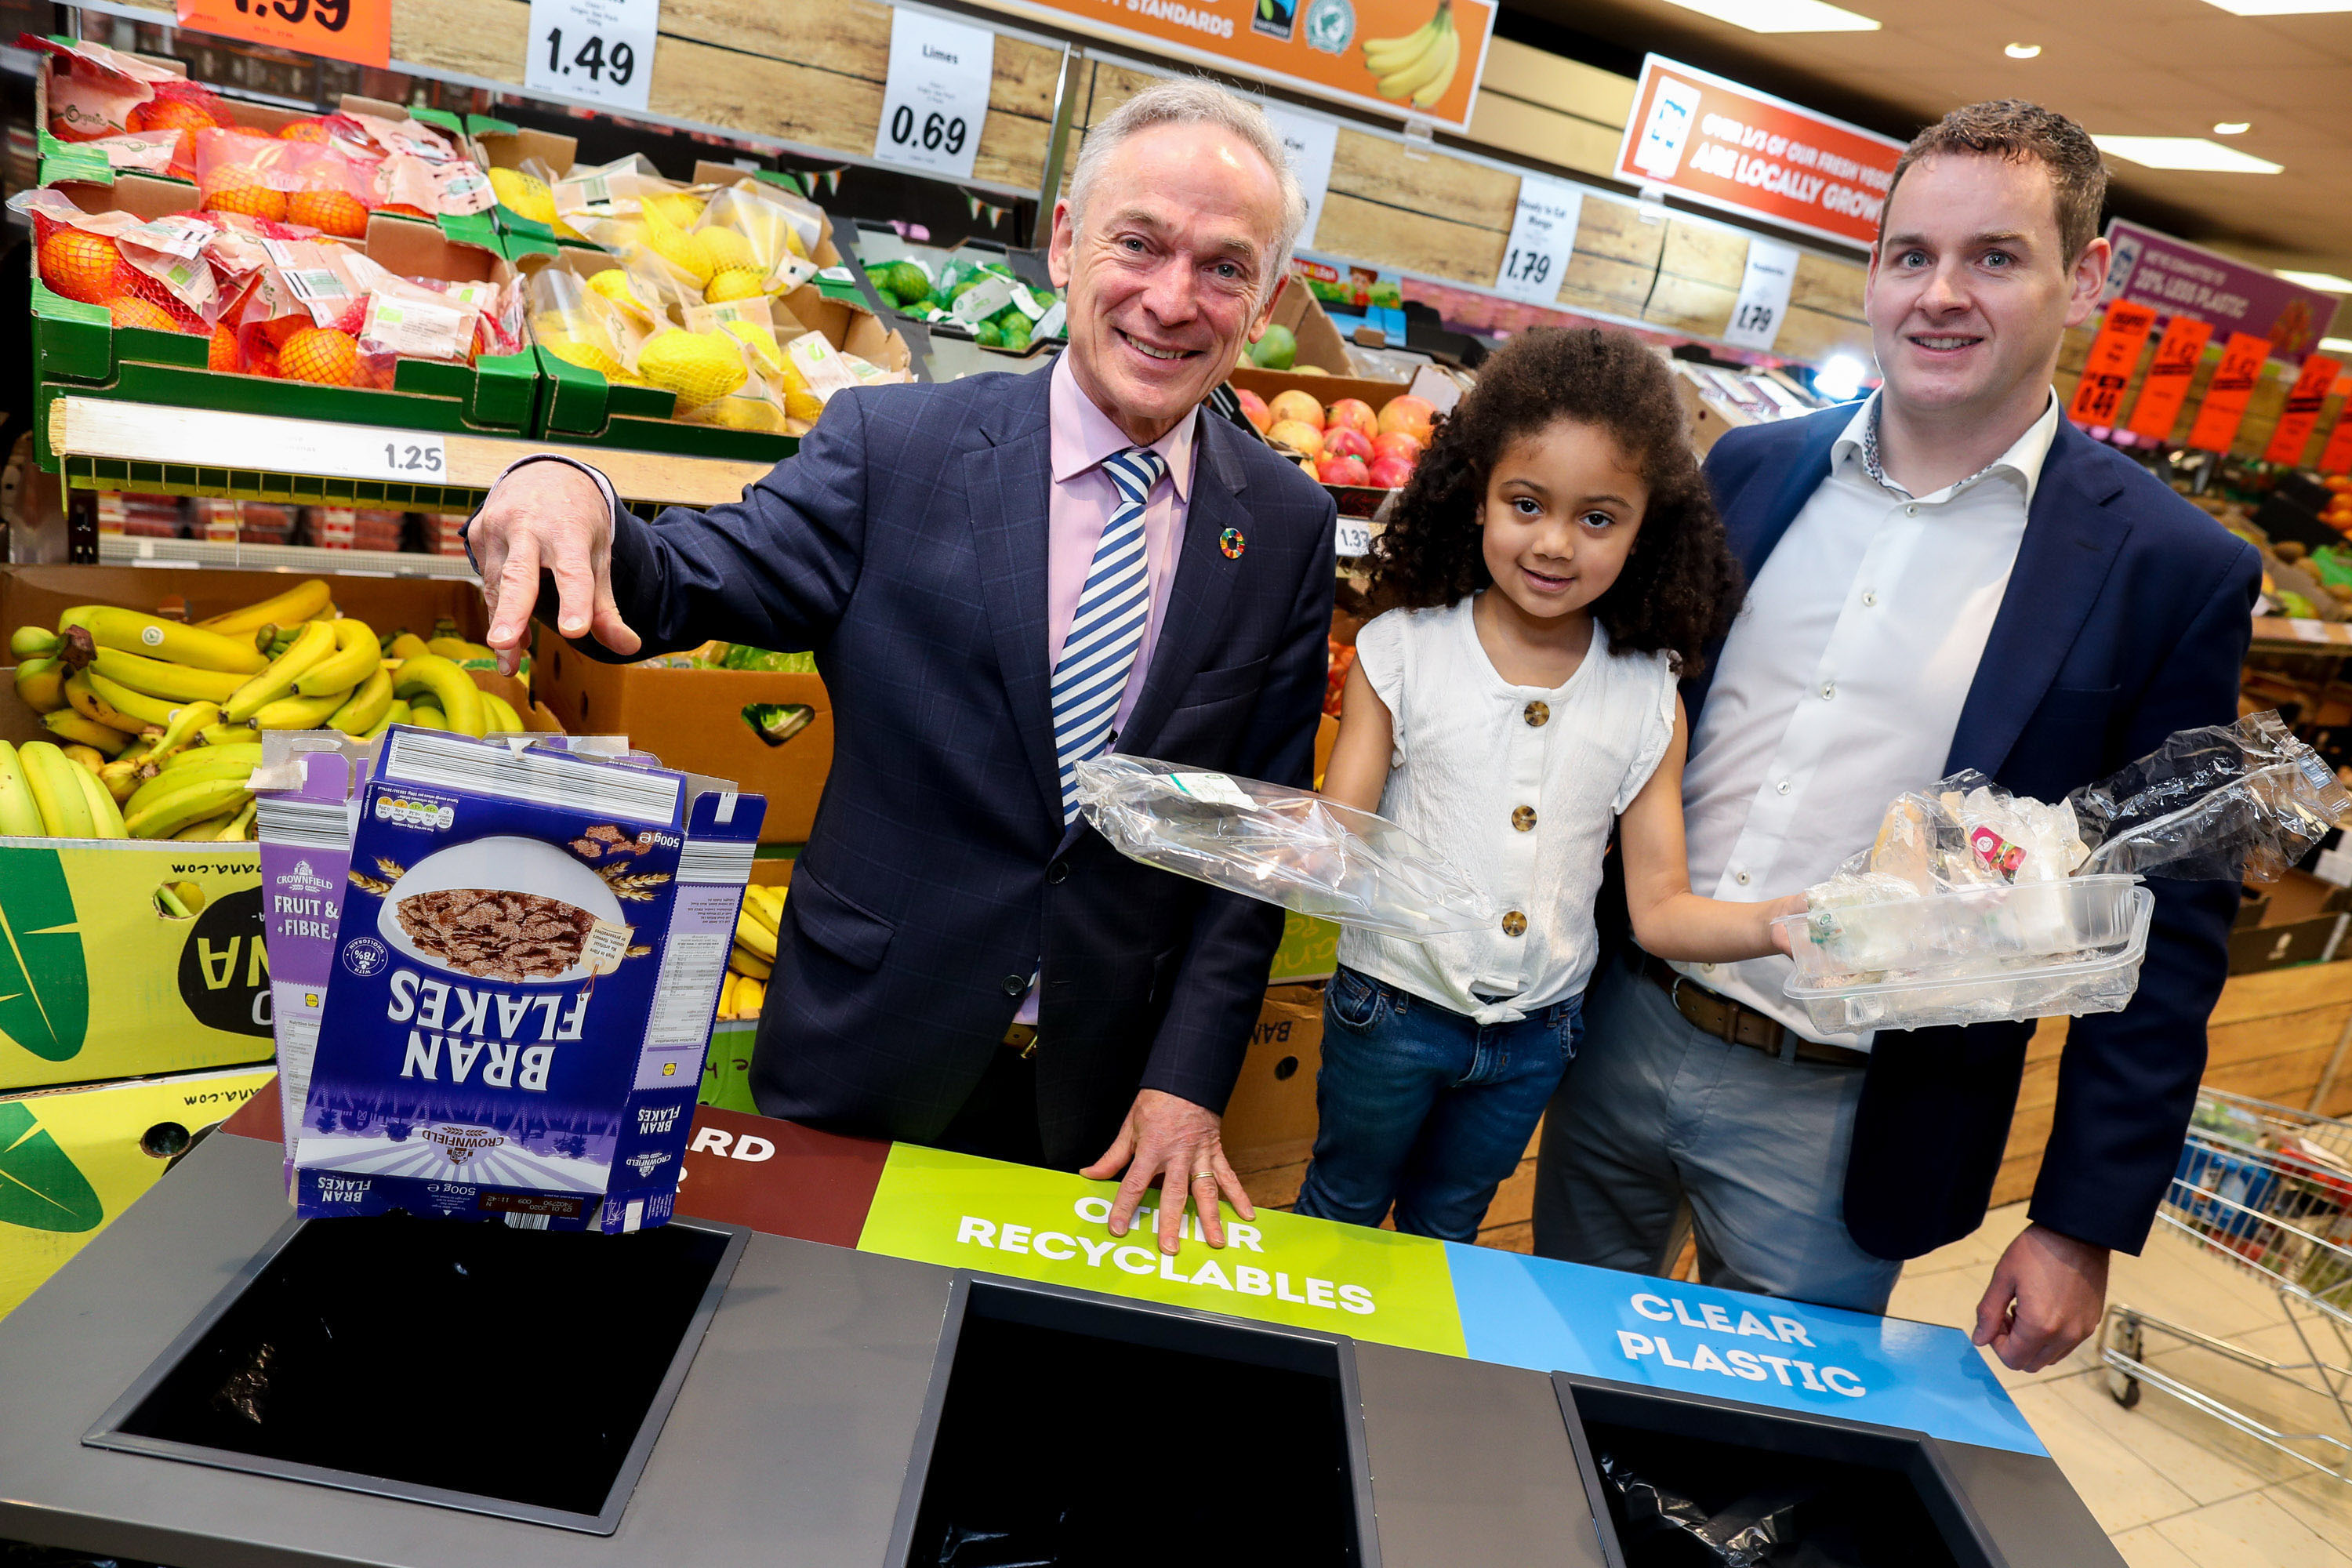 Dublin Voice   Lidl Ireland Becomes the First Irish retailer to